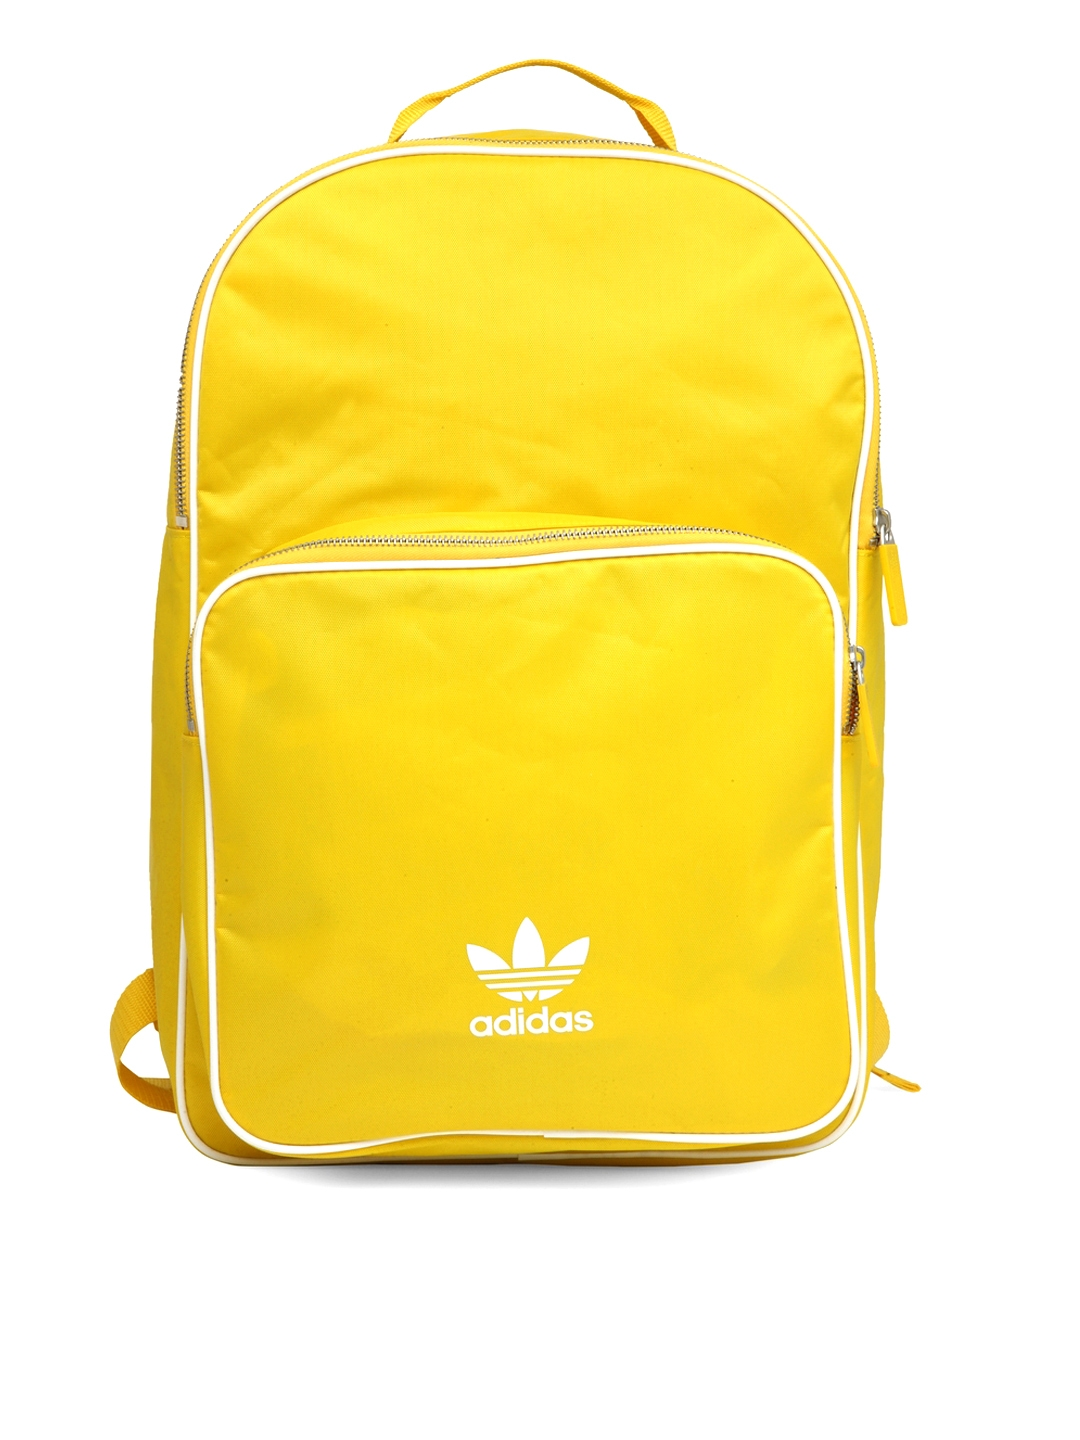 Buy ADIDAS Originals Unisex Yellow BP CL ADICOLOR Backpack ... 10c63d42a0548